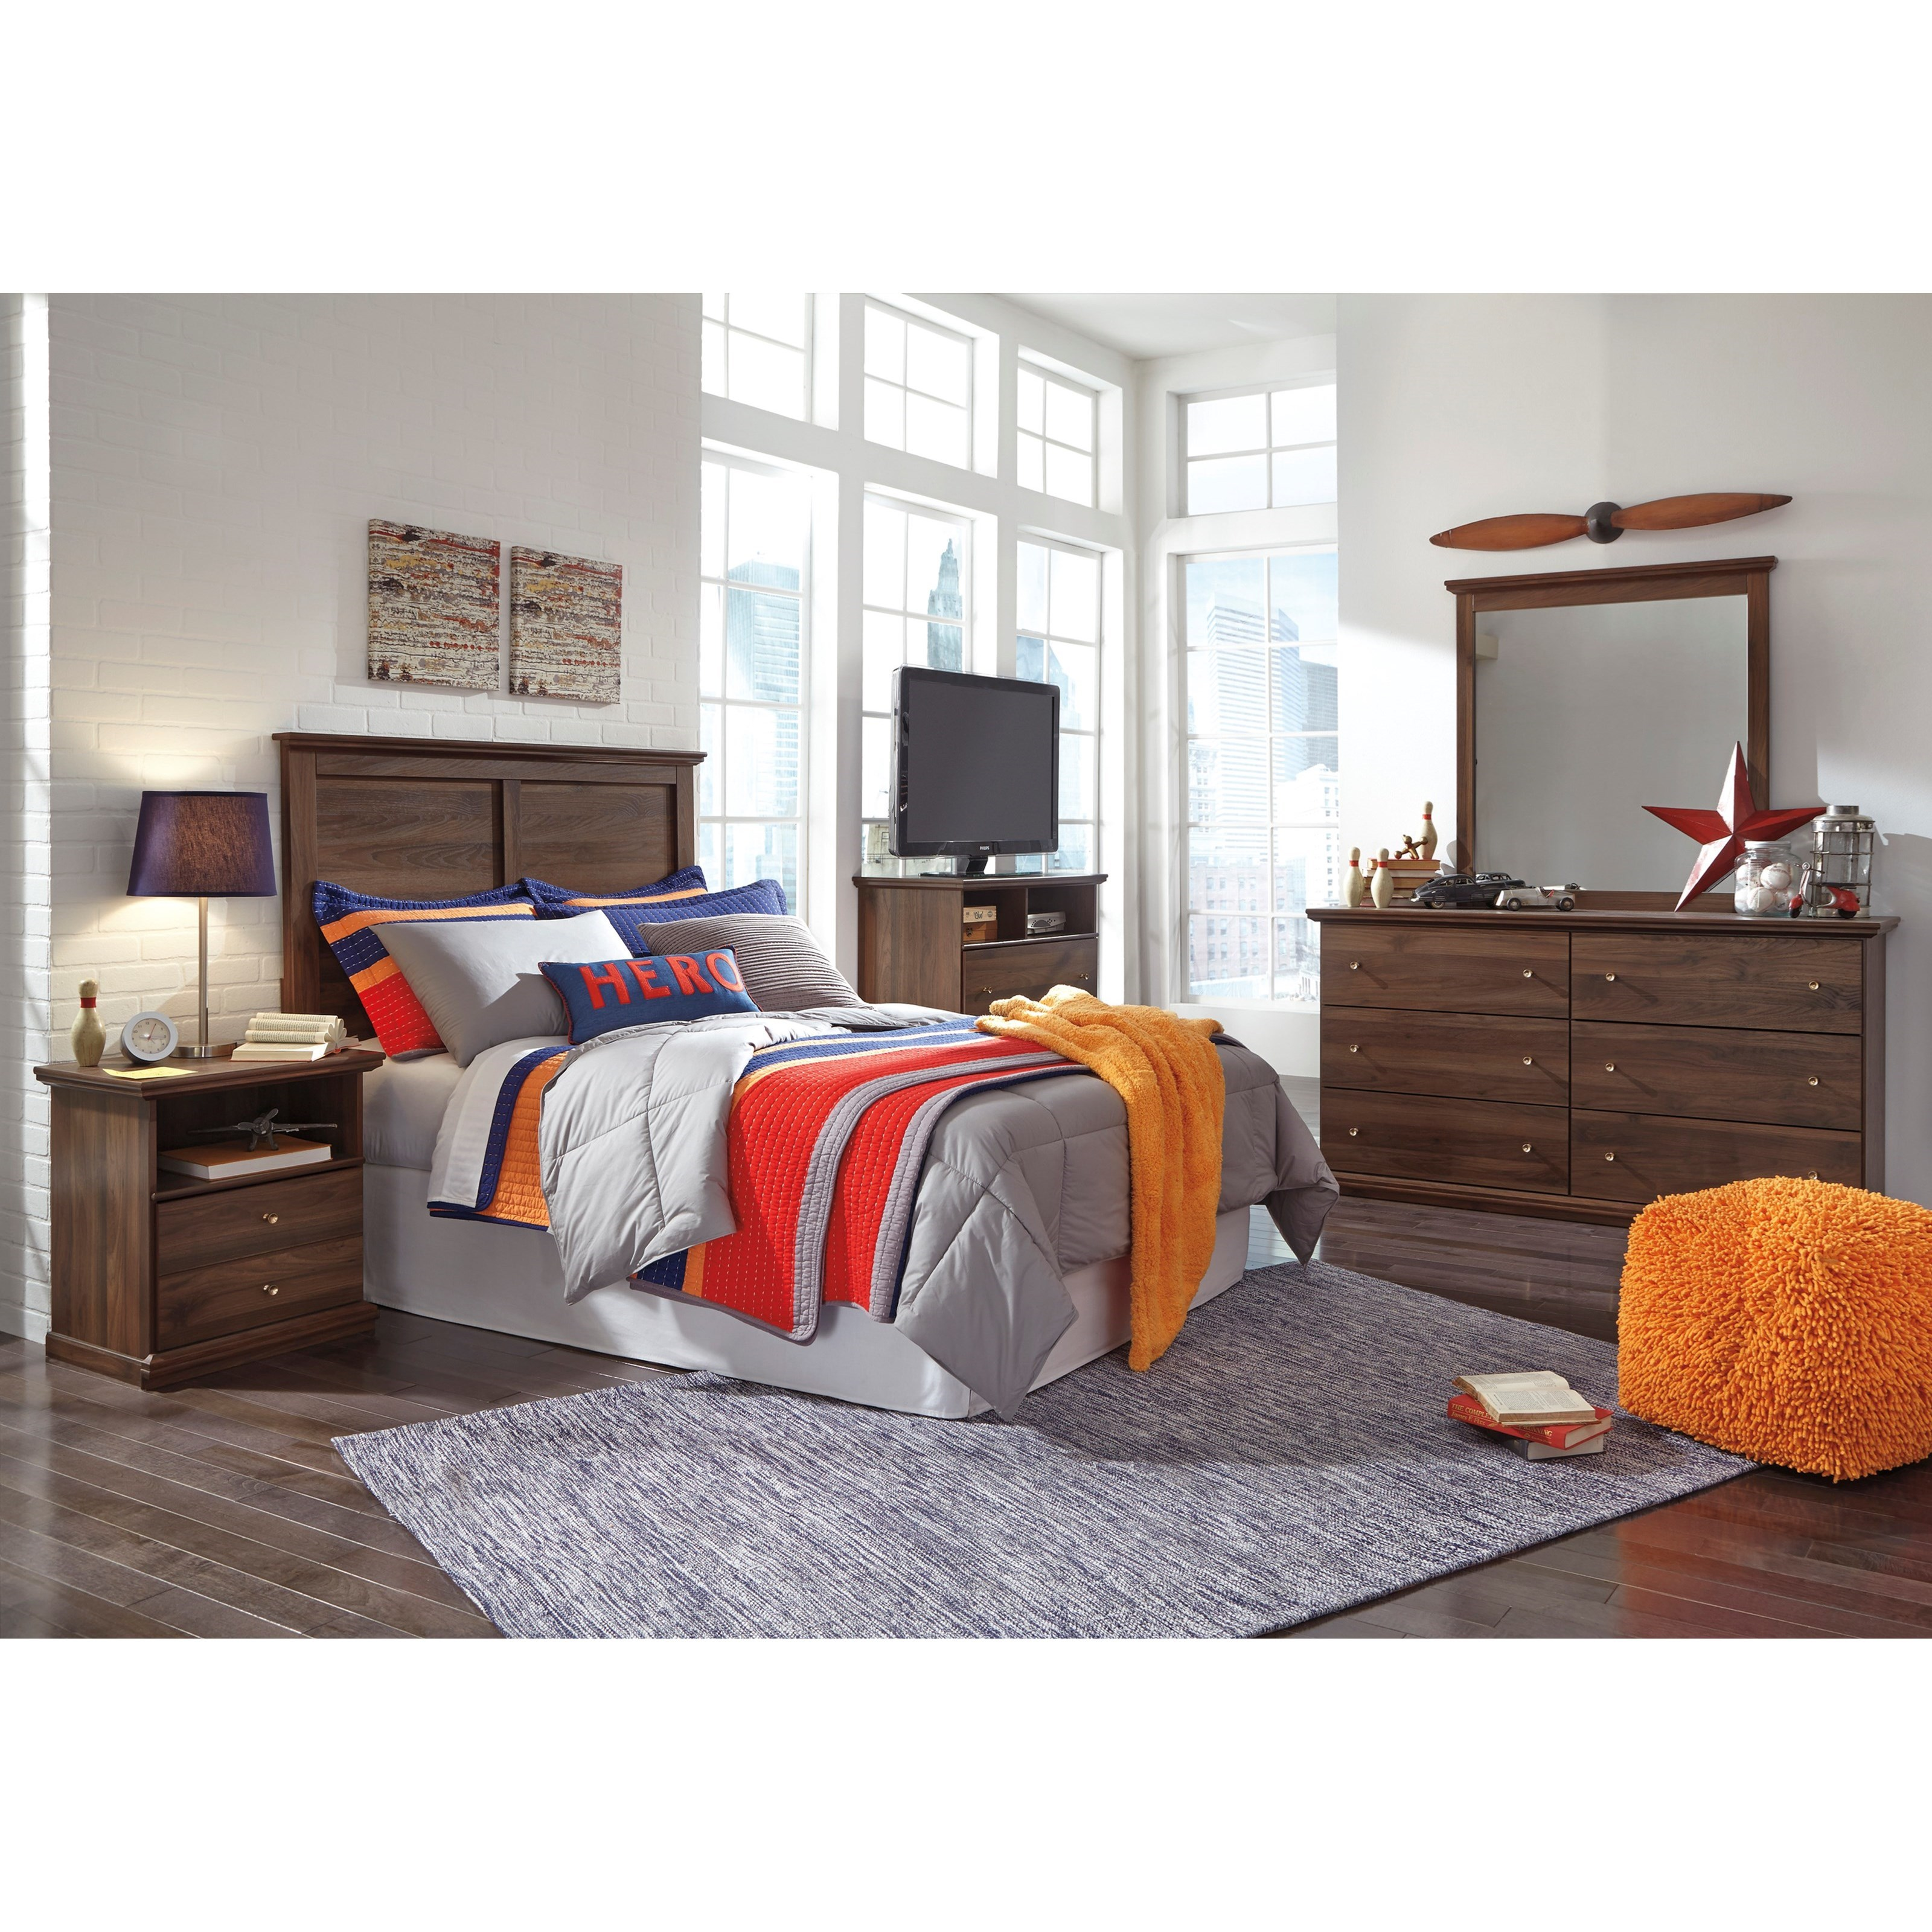 Signature Design by Ashley Burminson Full Bedroom Group - Item Number: B135 F Bedroom Group 3